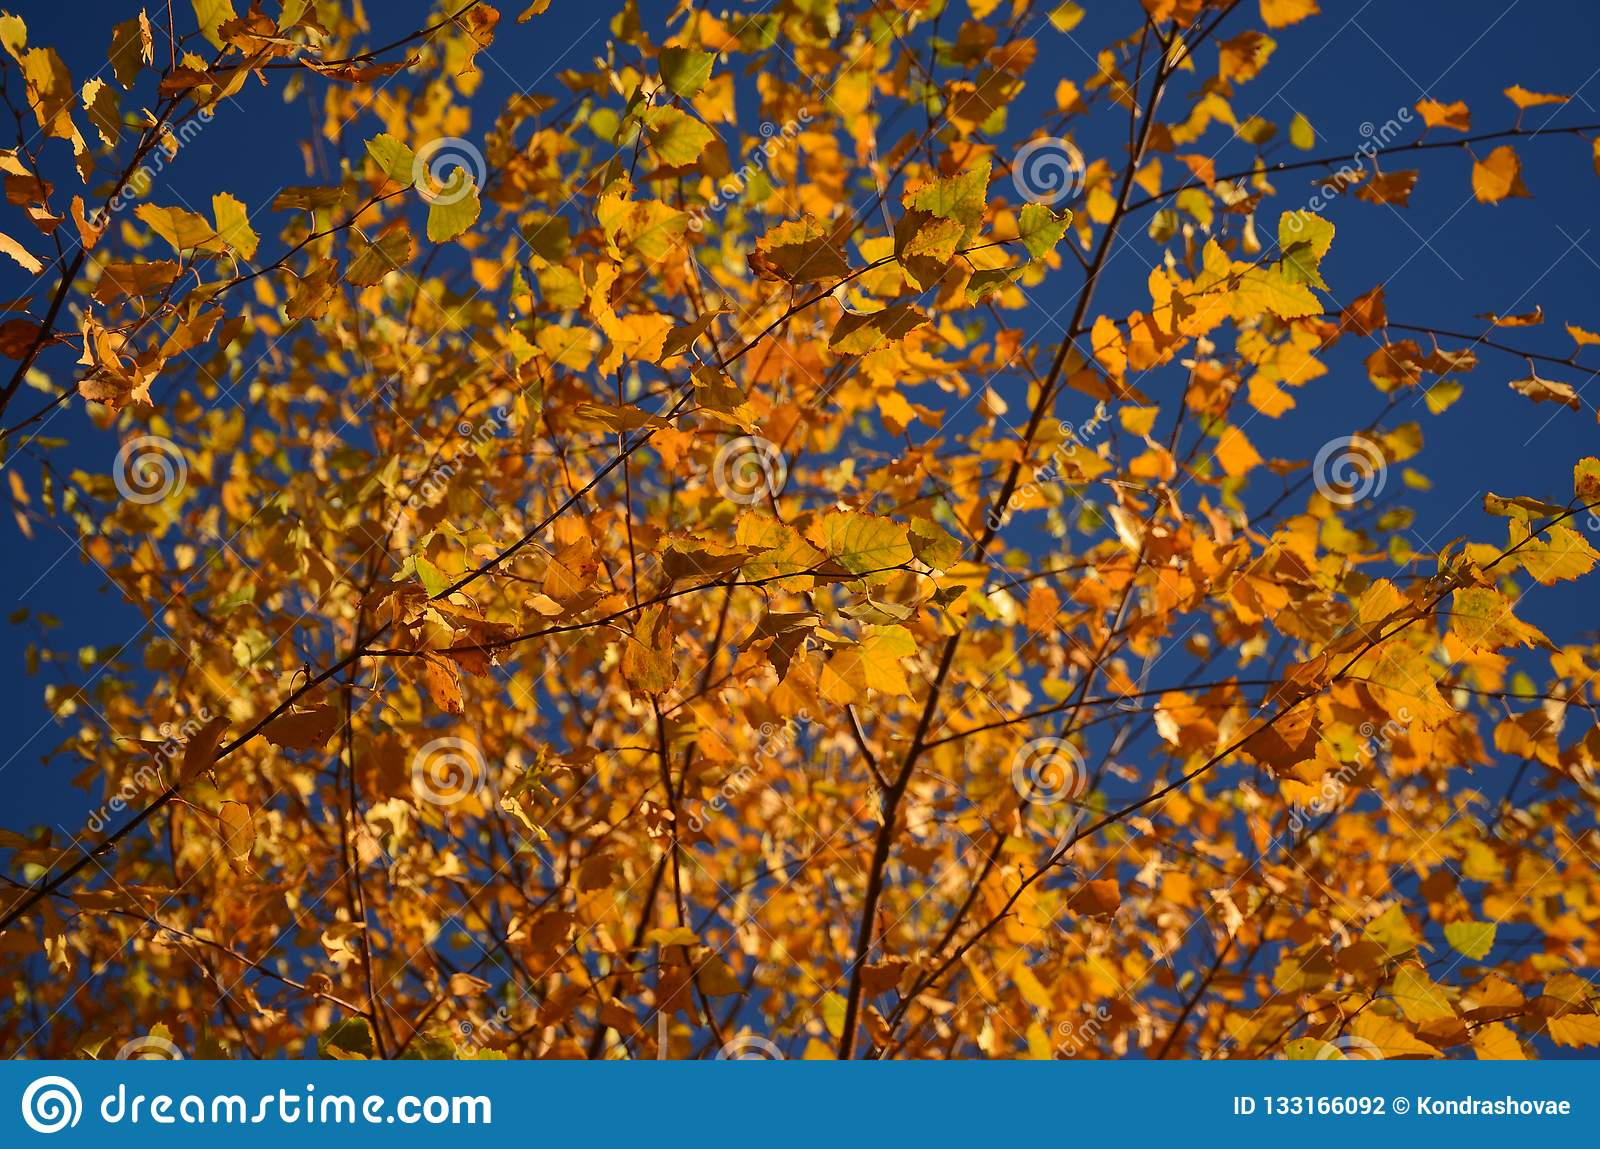 Yellow autumn leaves on the tree